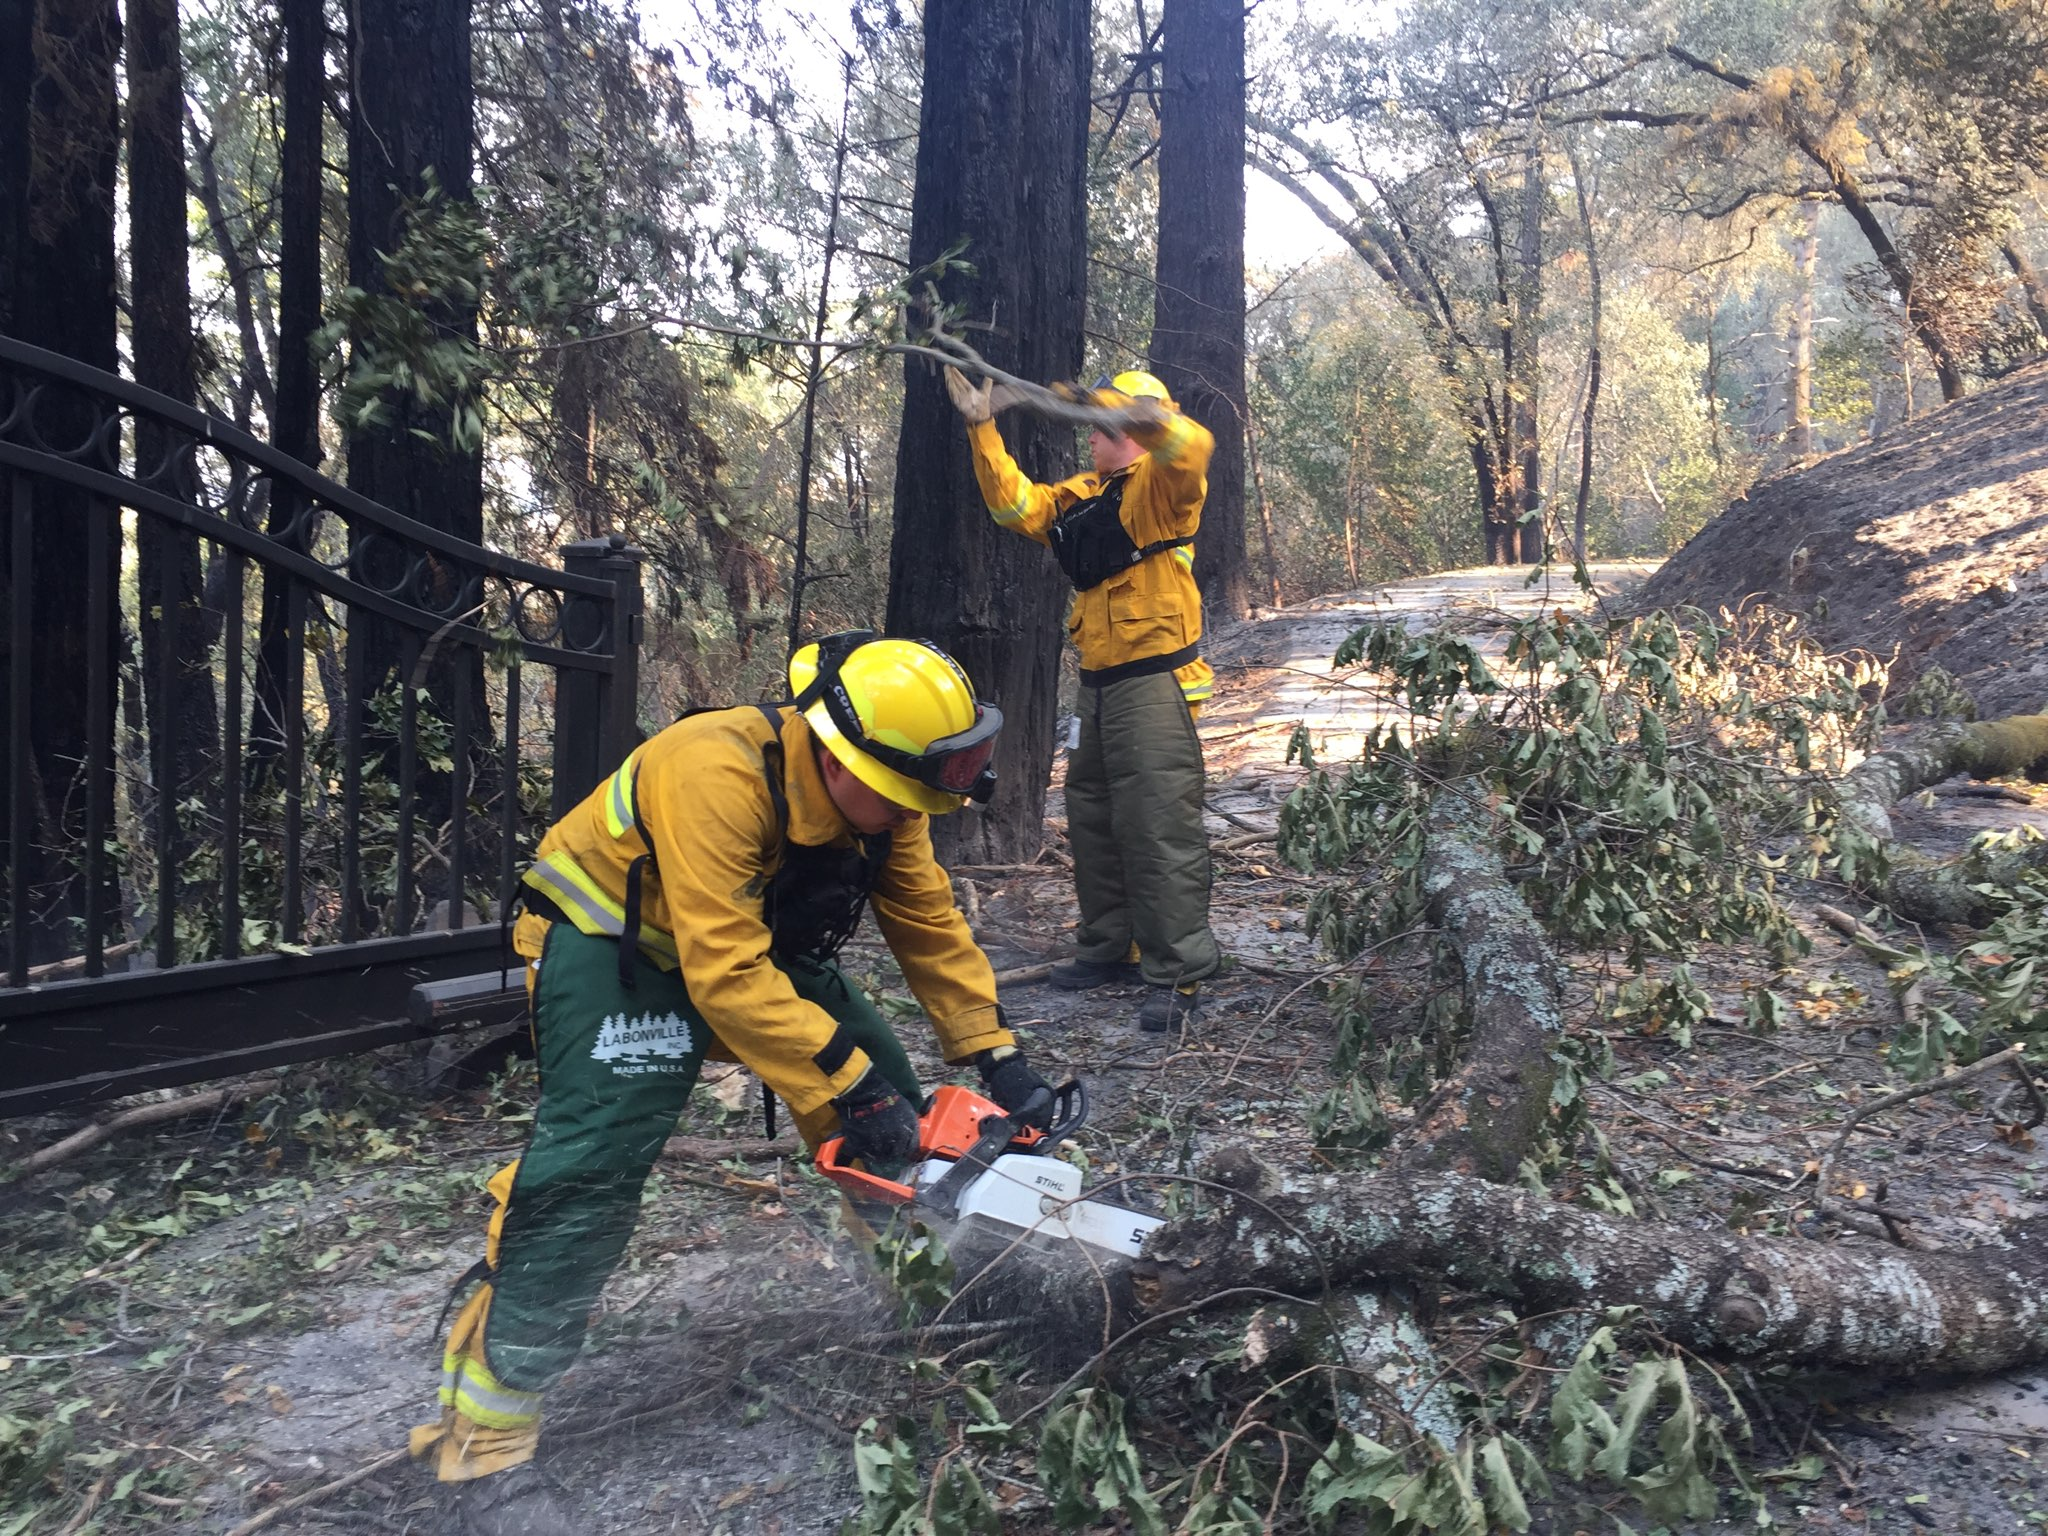 AIGs Wildfire Mitigation Specialists Work To Clear A Path Gain Access Policyholders Home During The October Wildfires In Northern California